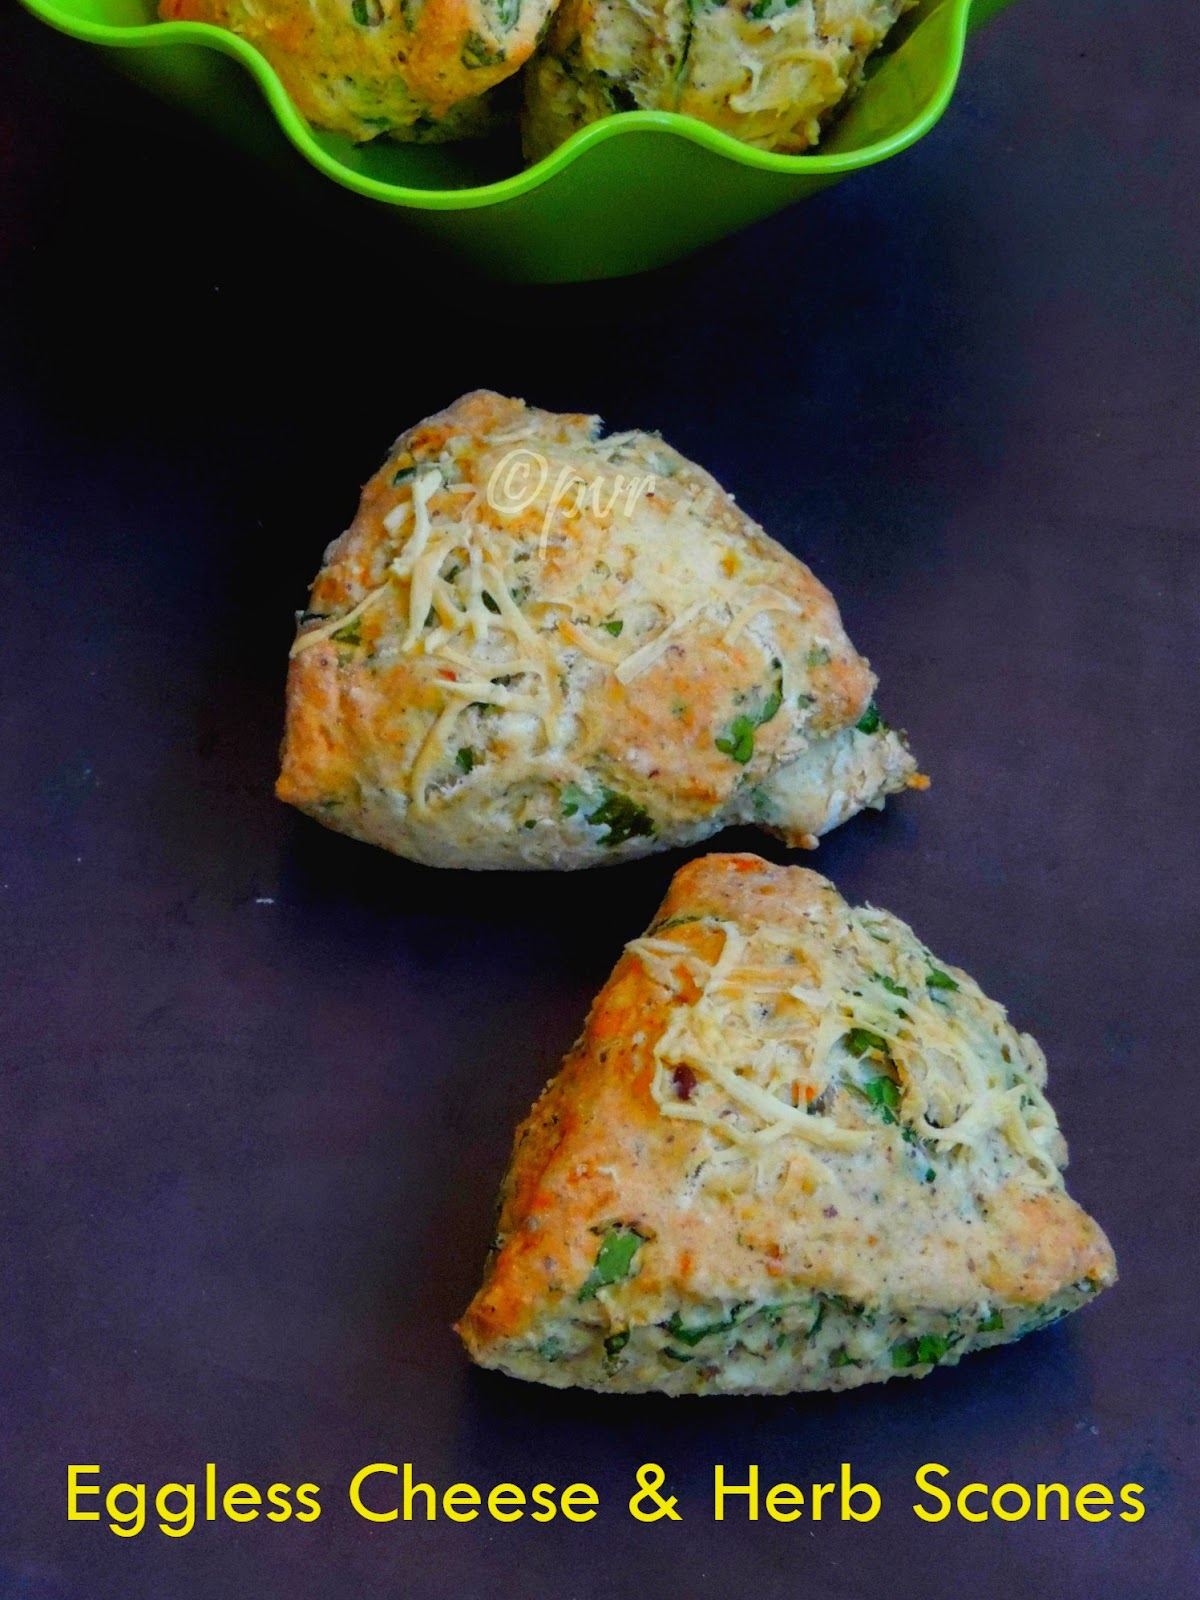 Scones with cheese & herb